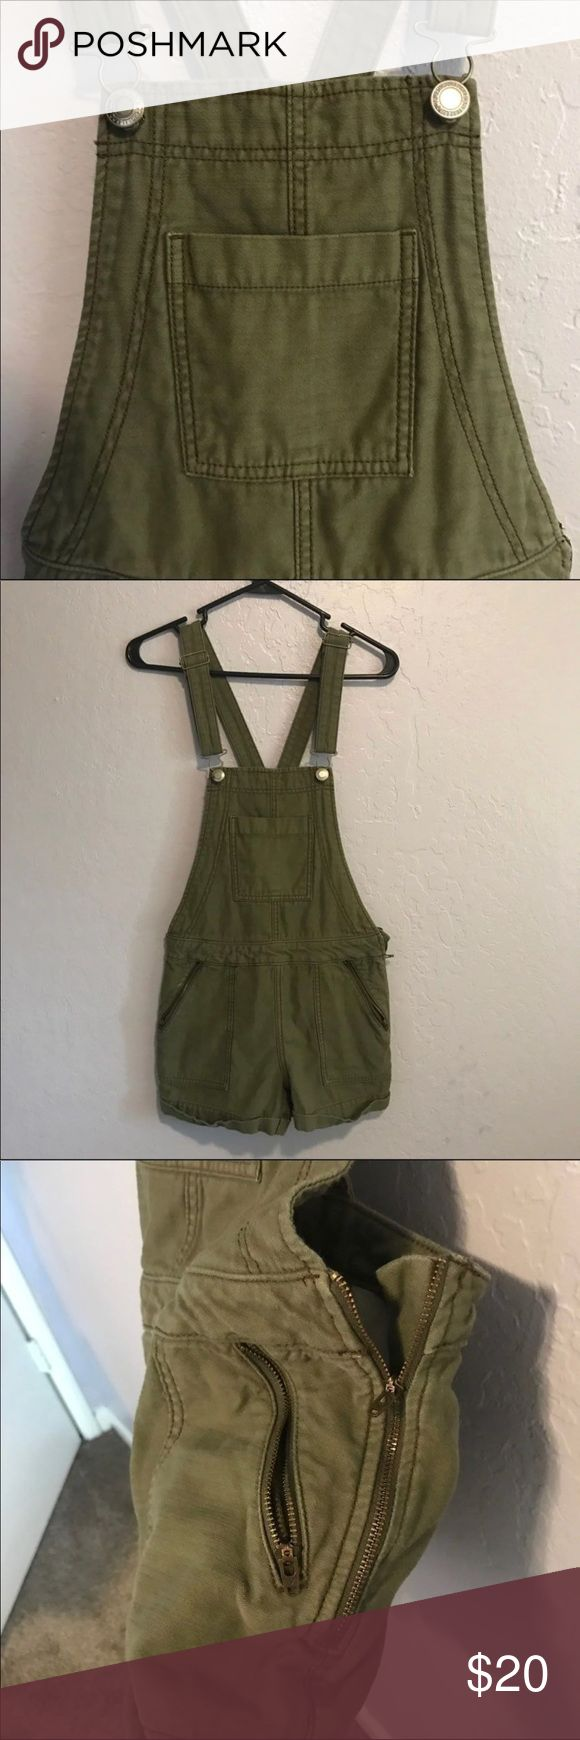 American Eagle overalls American Eagle olive overalls great for summer and spring! Size xs 00-1 perfect condition American Eagle Outfitters Other